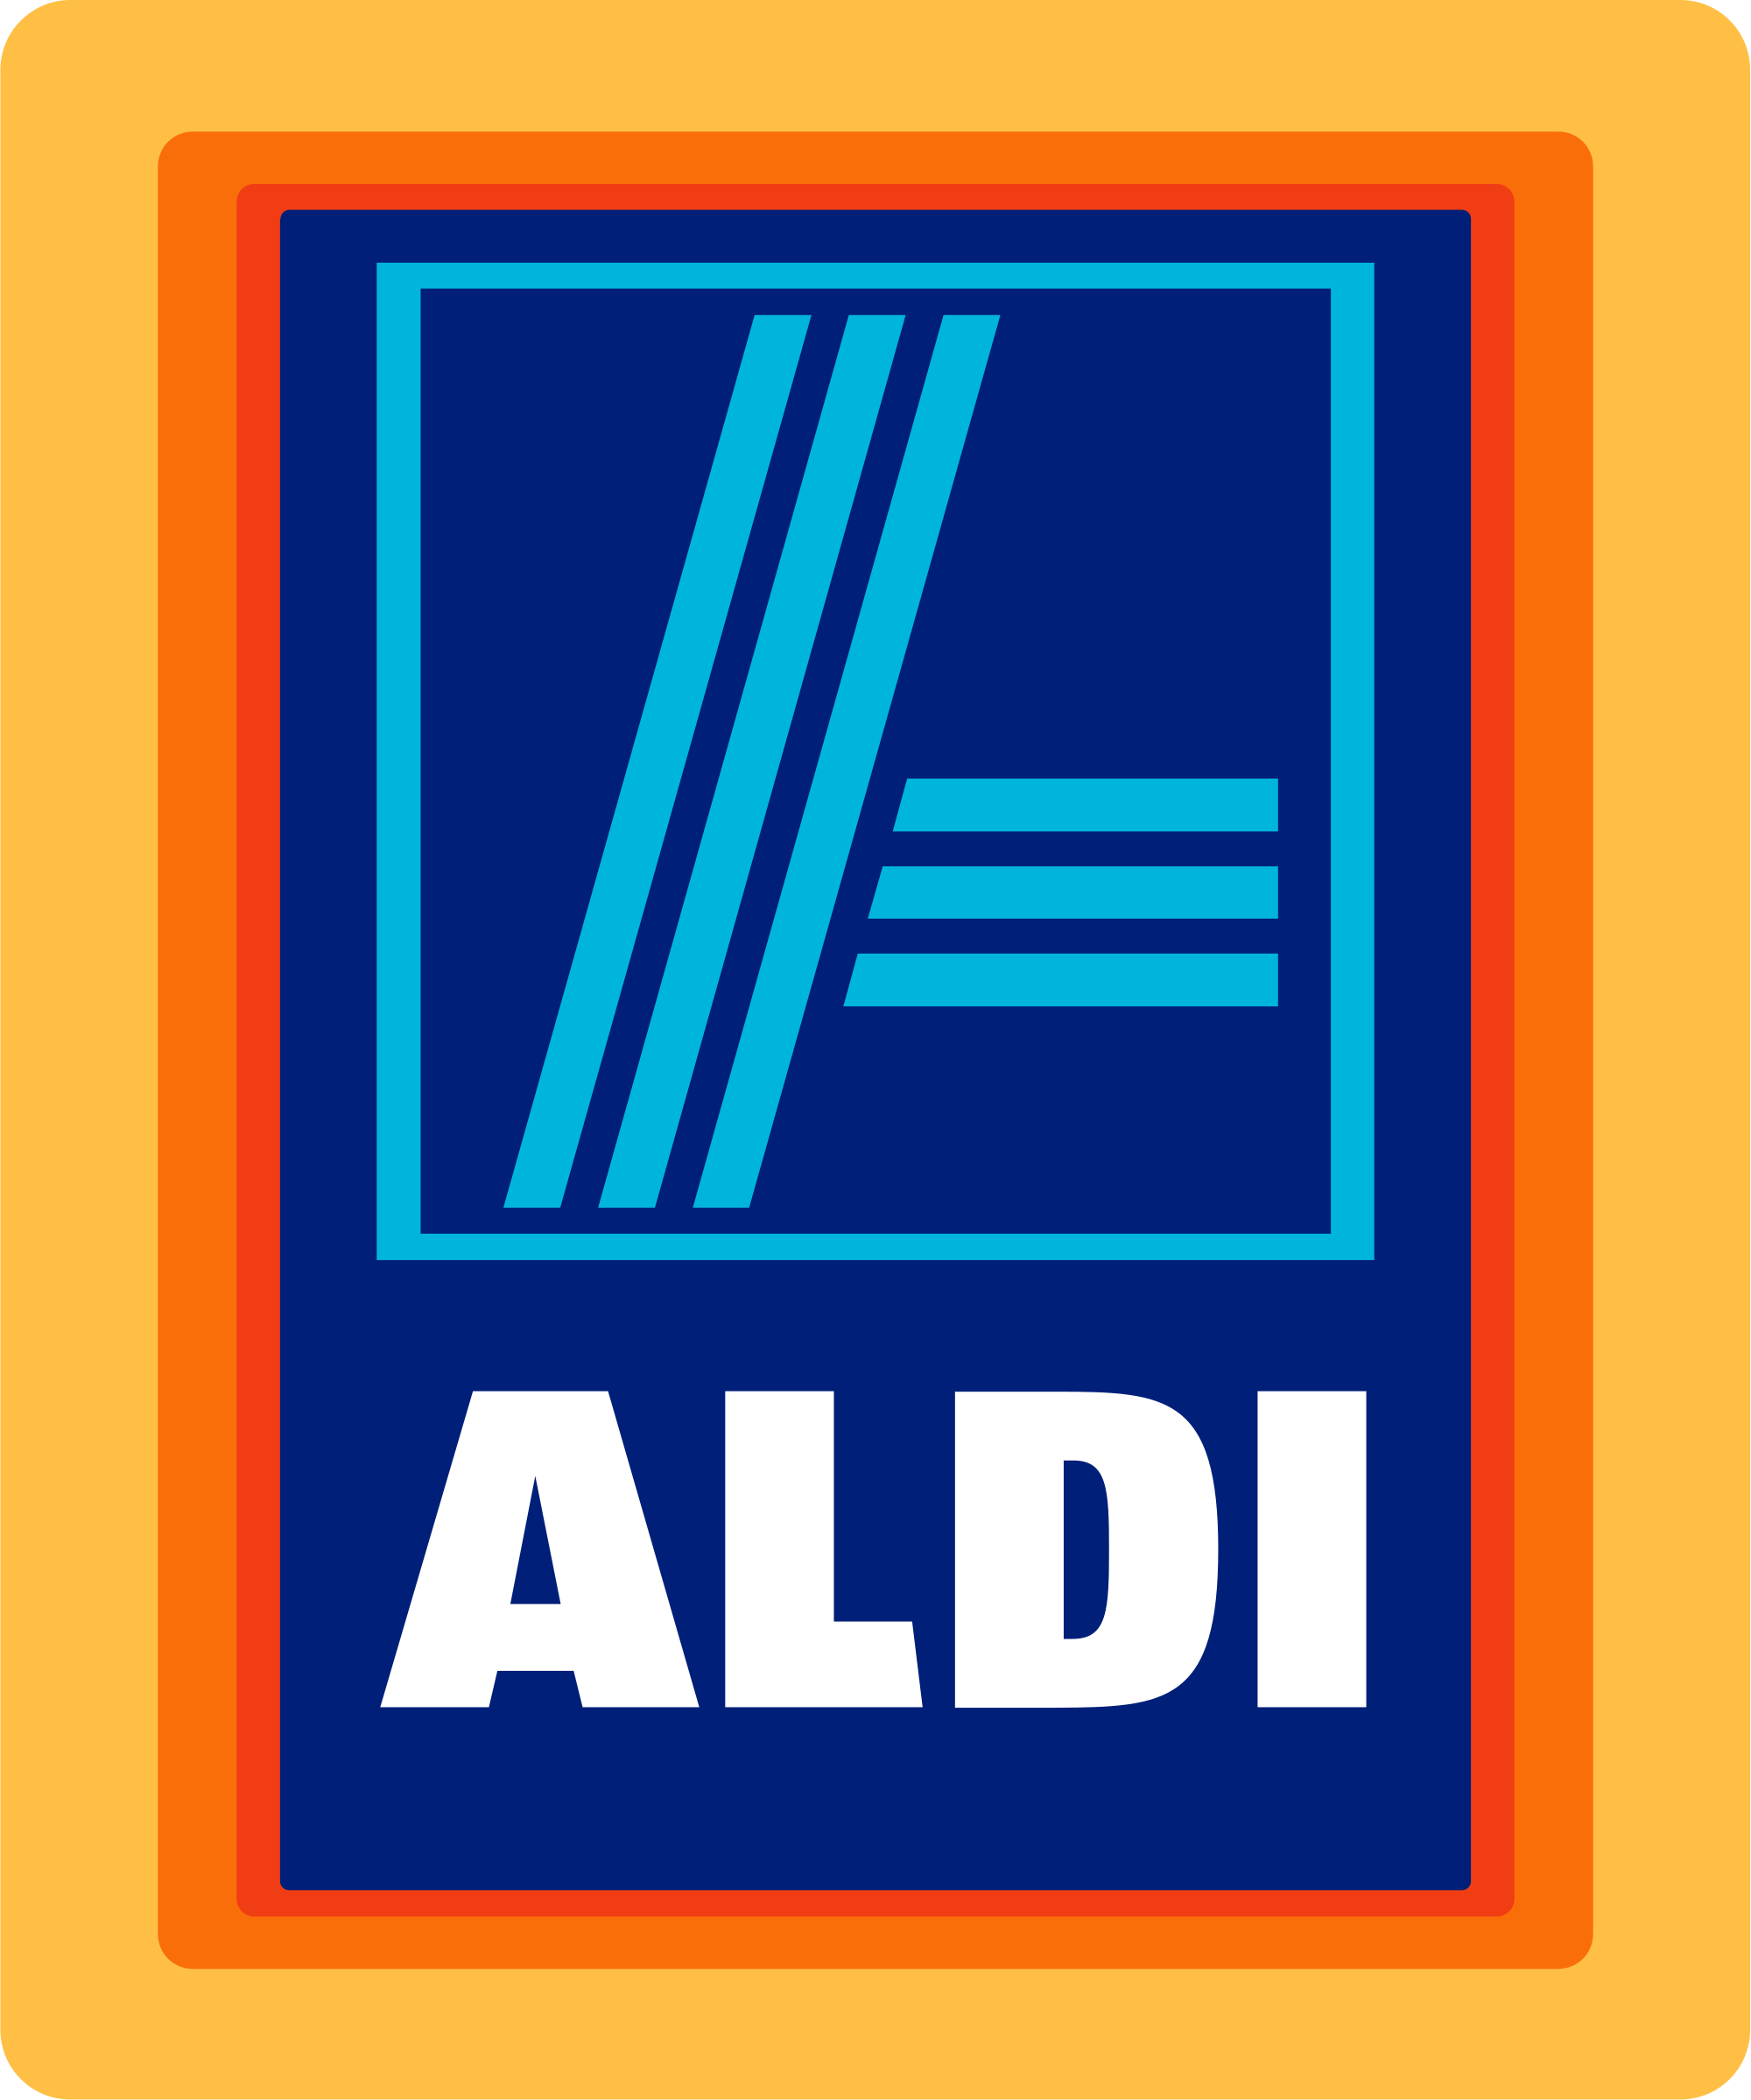 ALDI - International Super Market Chain